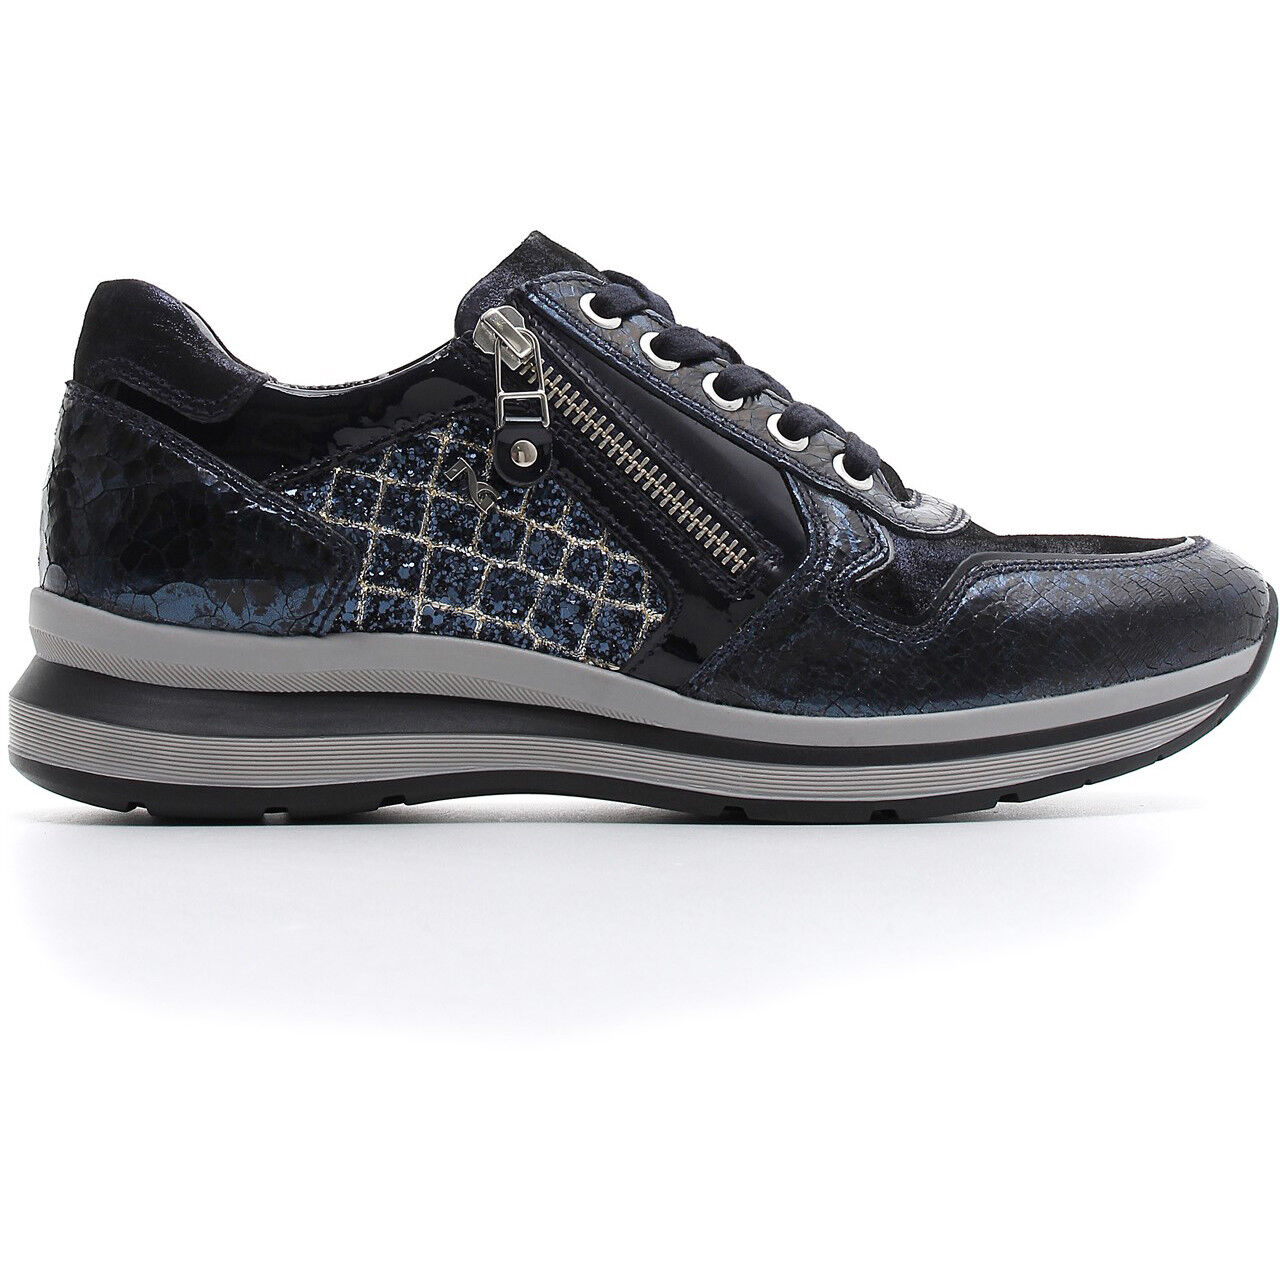 SNEAKERS SNEAKERS SNEAKERS SPORTS SHOES AUTUMN WINTER blackGIARDINI NEW COLLECTION A806570D 35e9d7